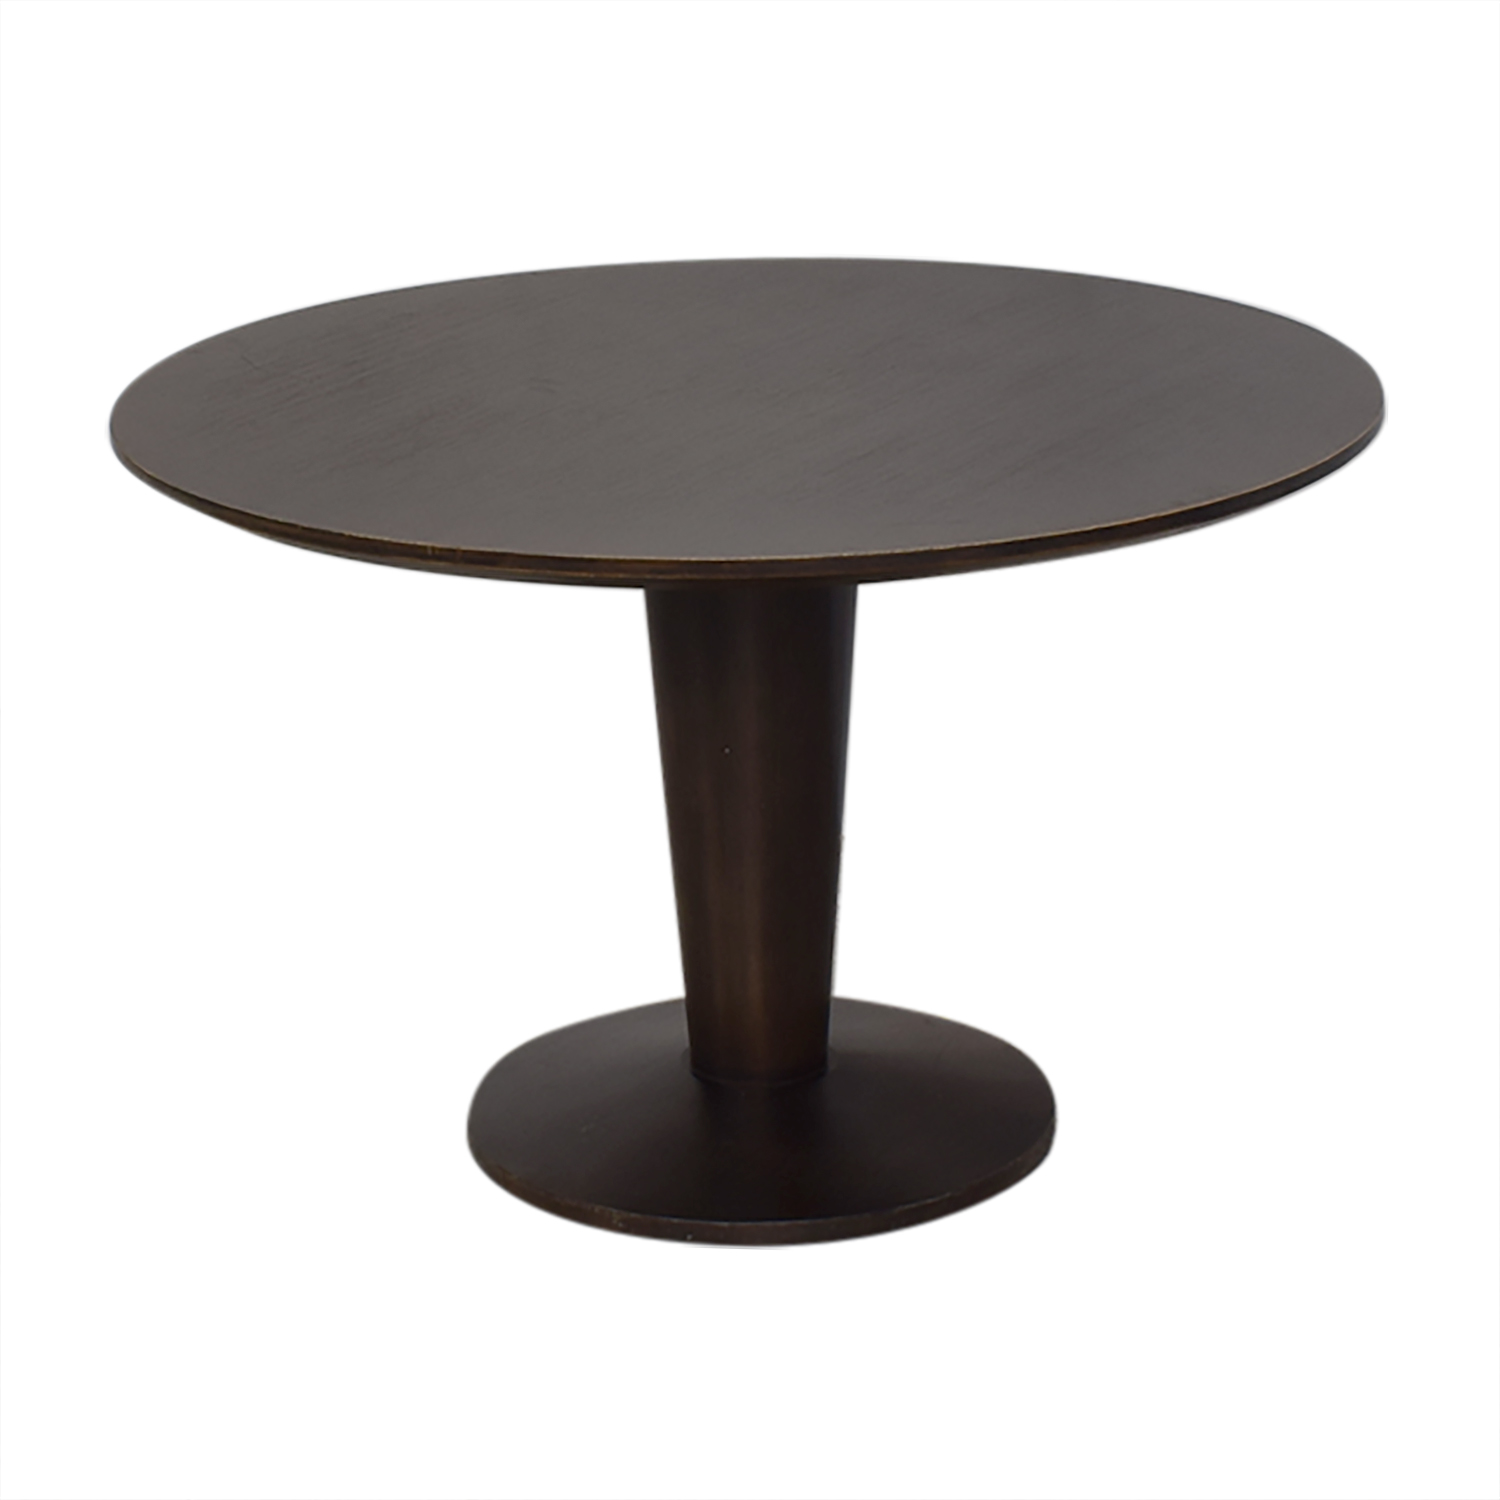 Room & Board Room & Board Dining Table discount